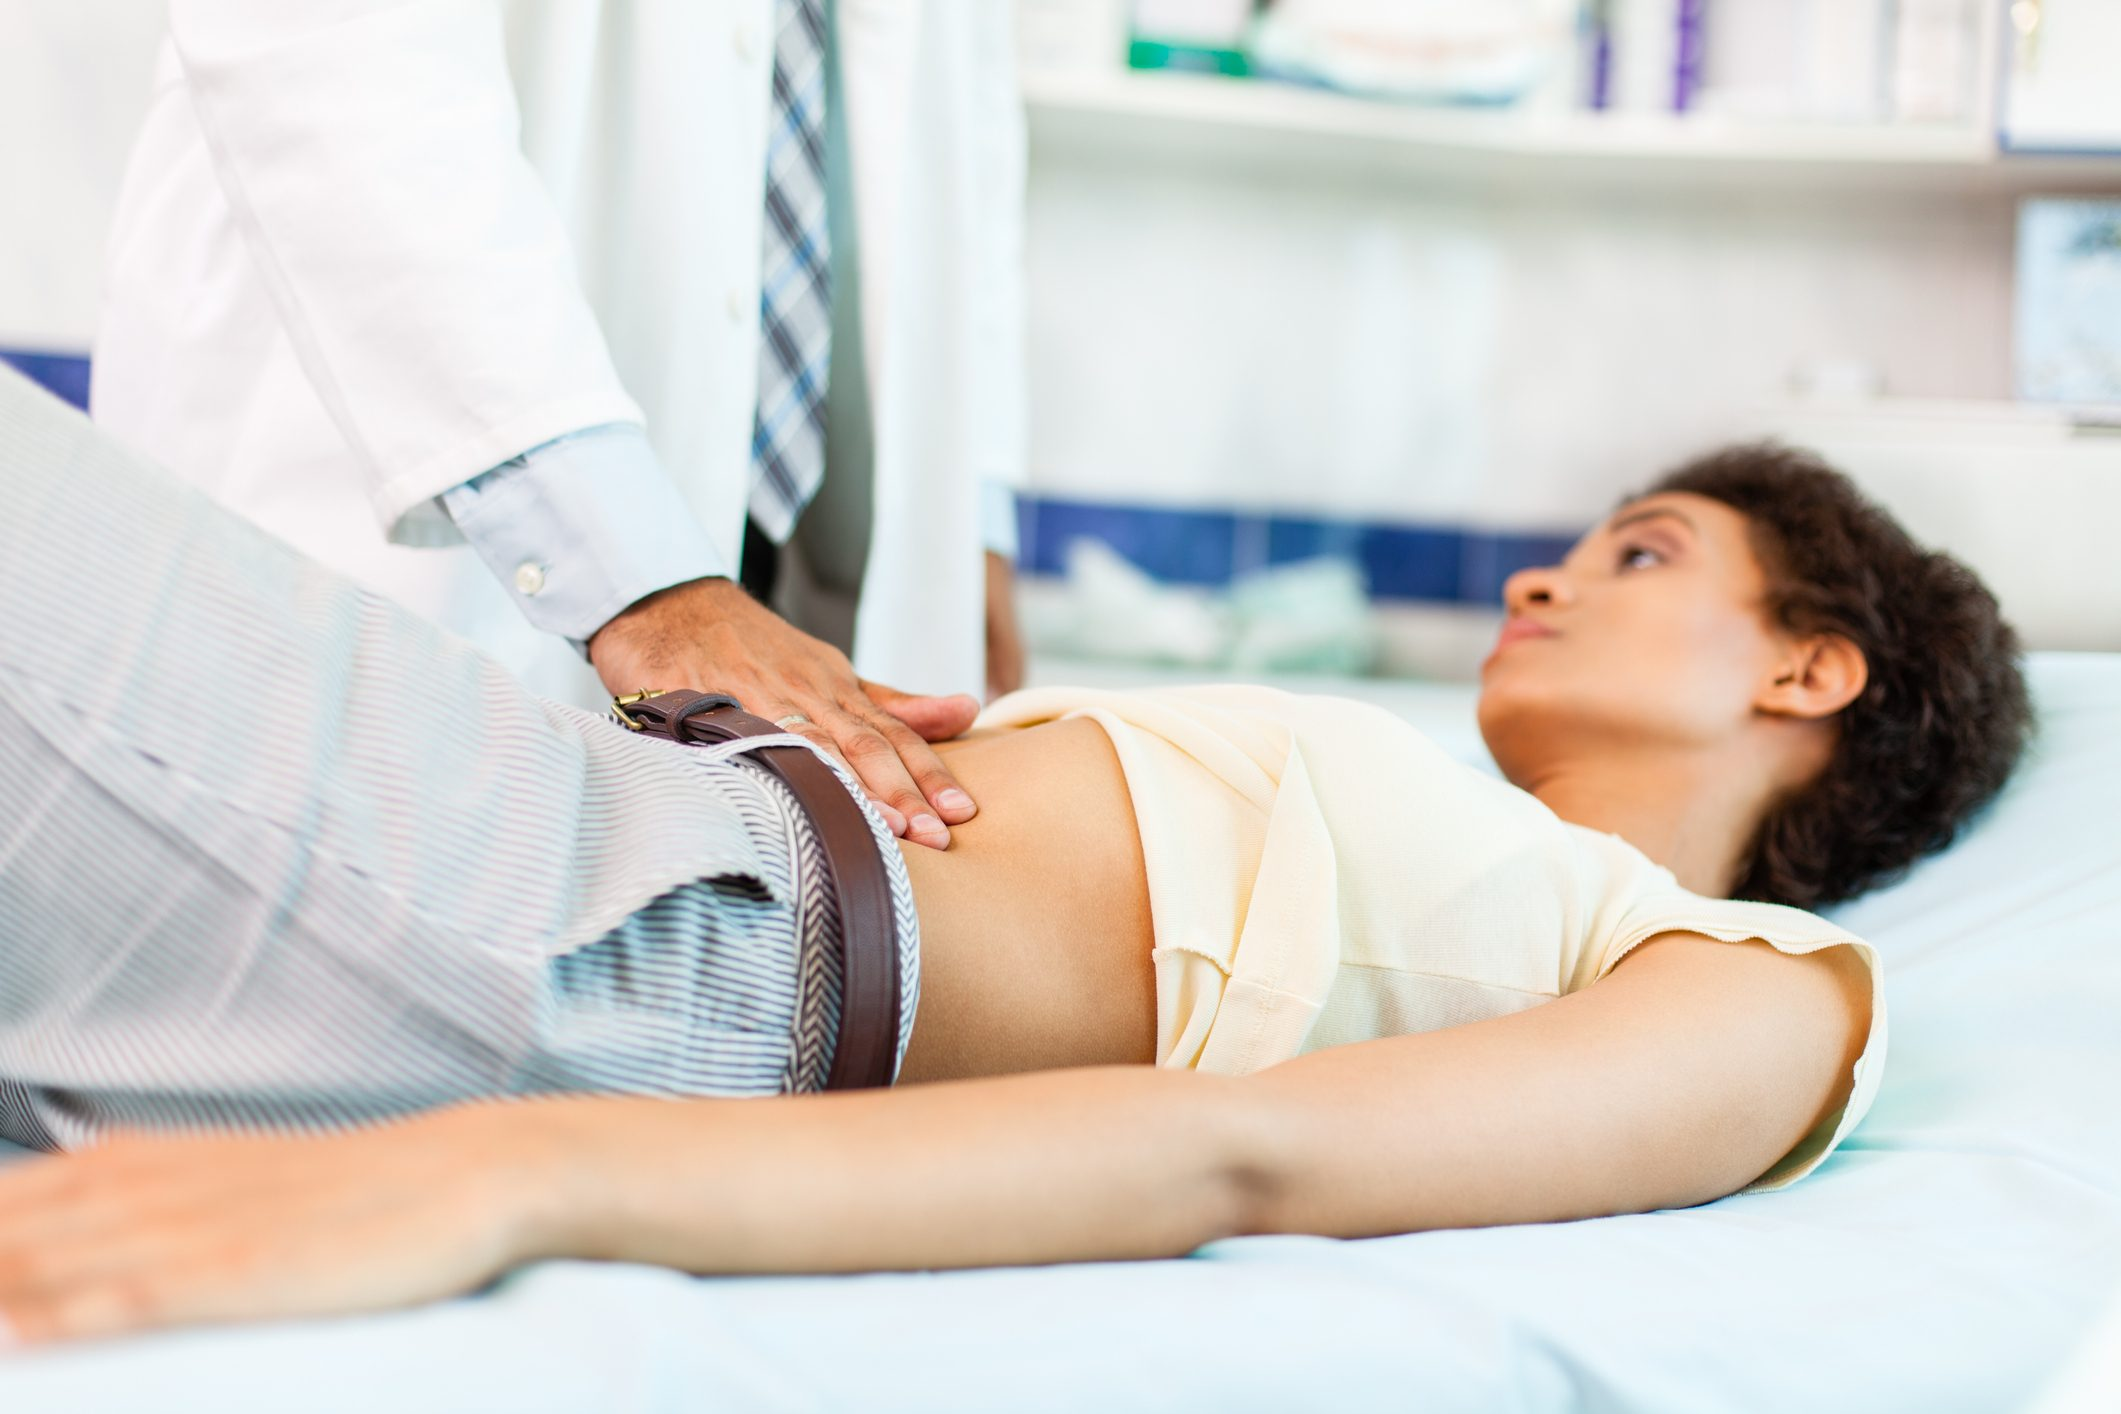 Woman with stomachache on medical exam